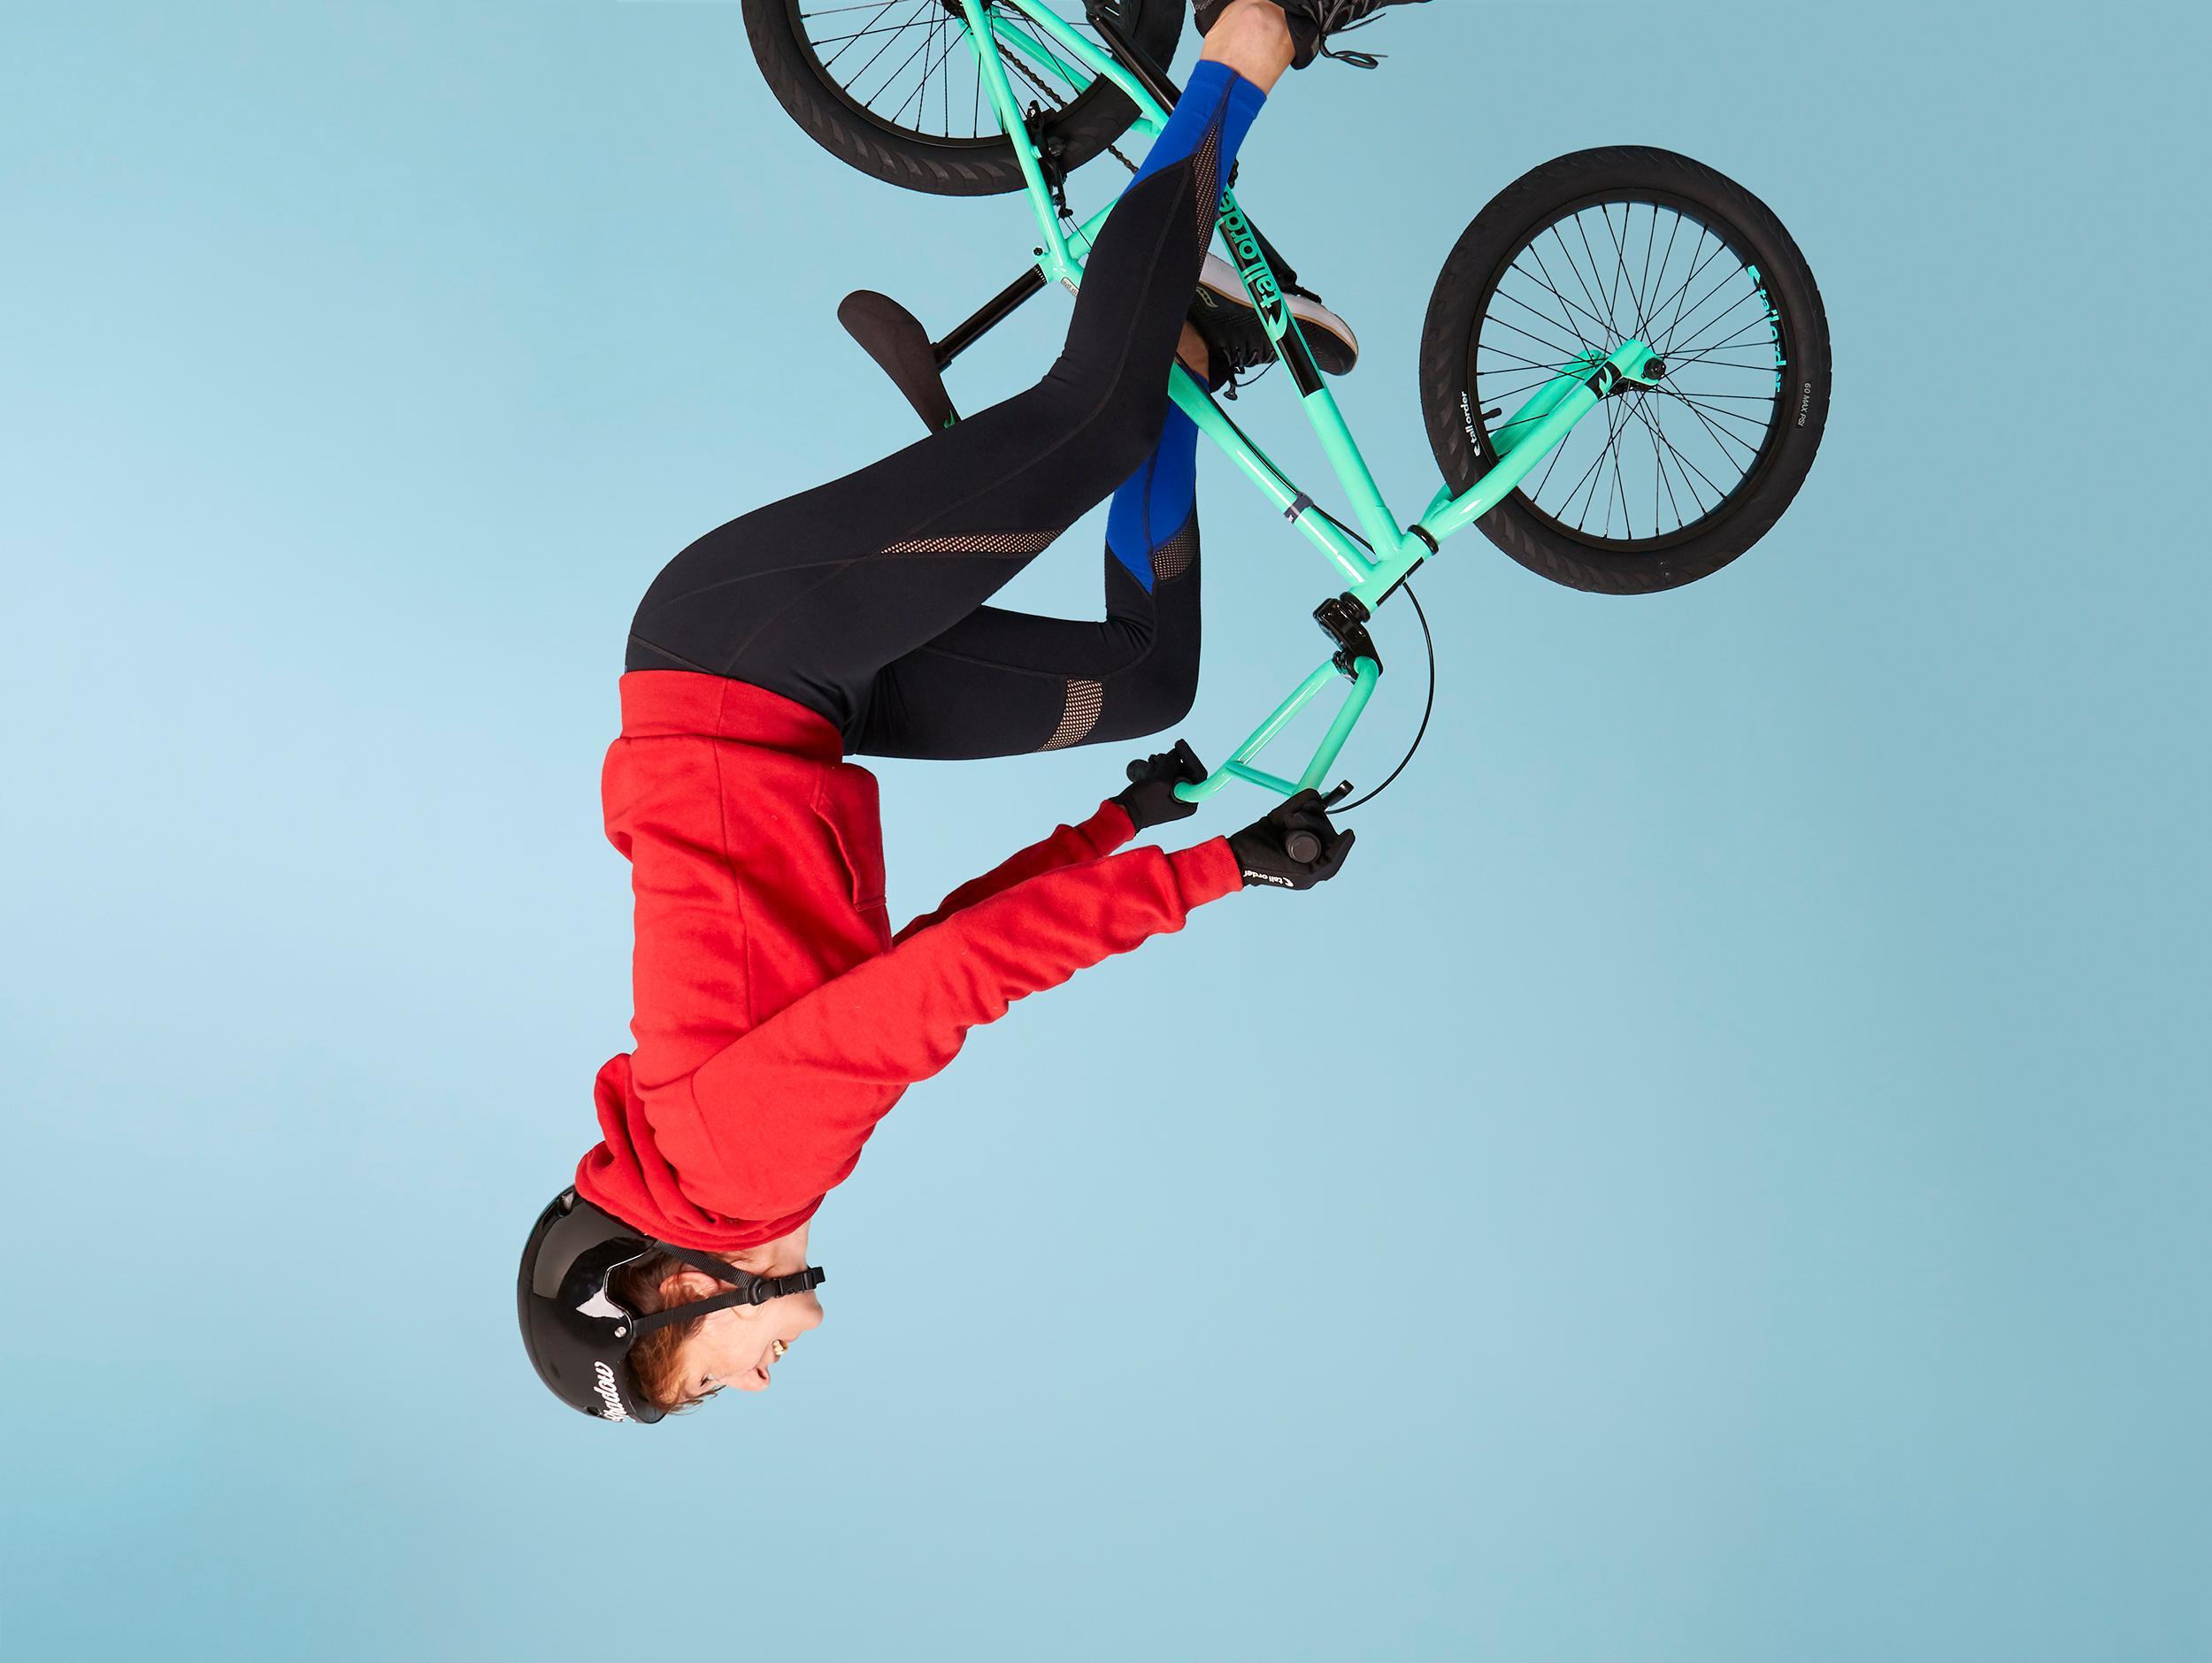 Fit in my 40s: am I too old to be practising BMX in the park?